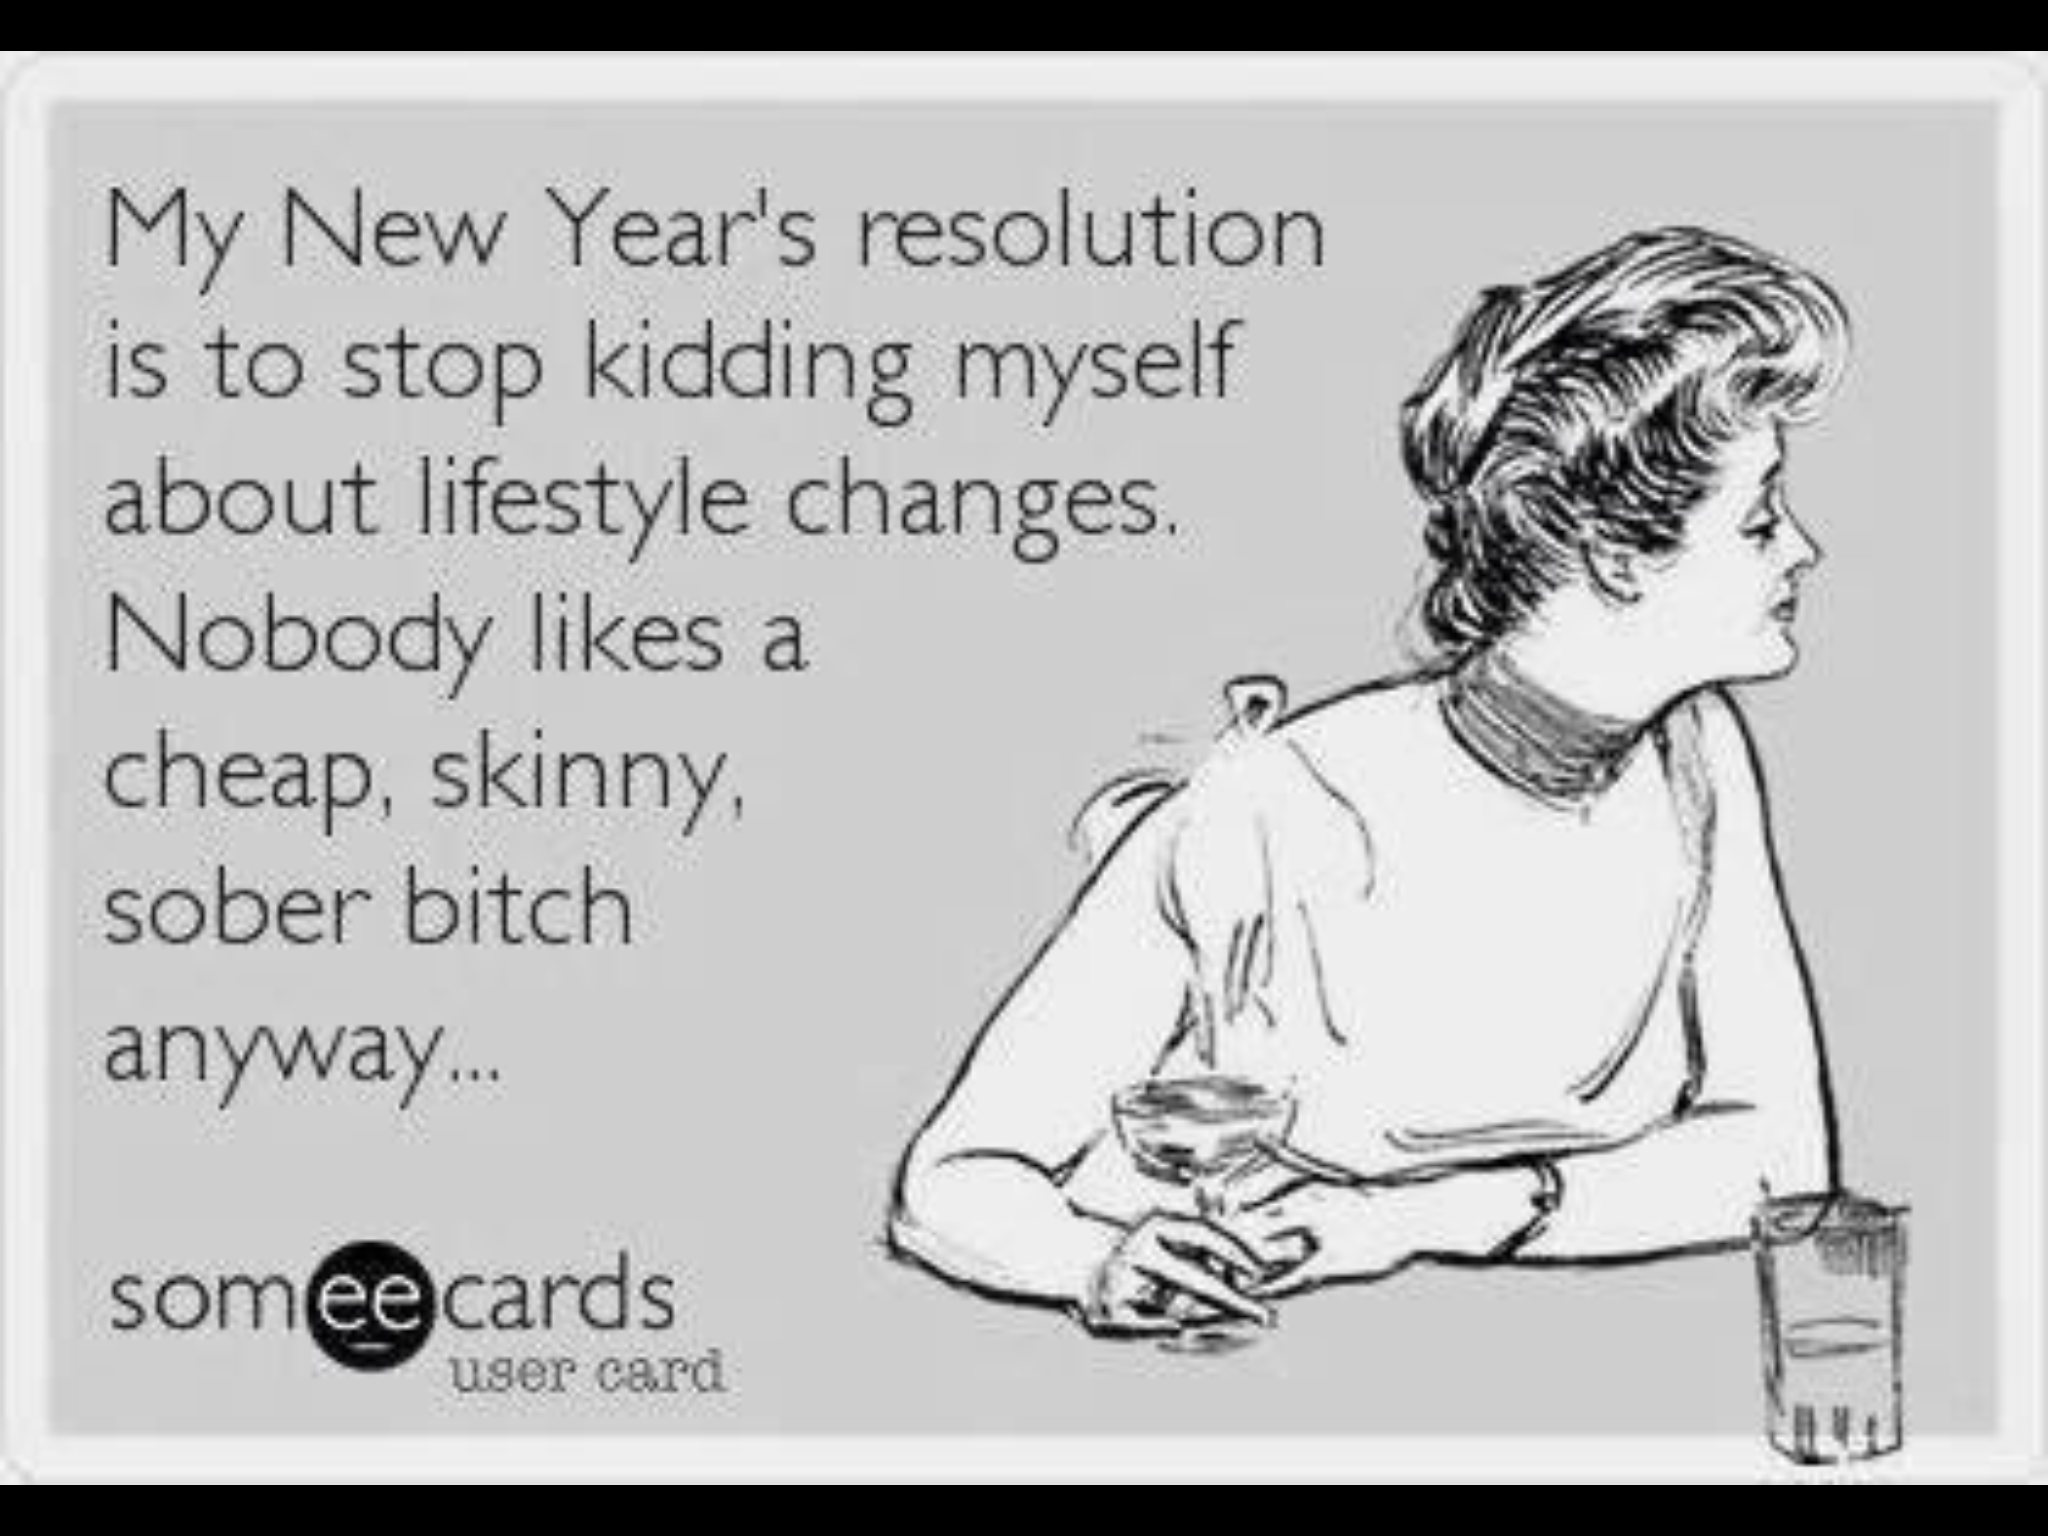 Pin By Tina Bazen On Lol New Year Eve Quotes Funny New Year Resolution Meme New Years Resolution Funny